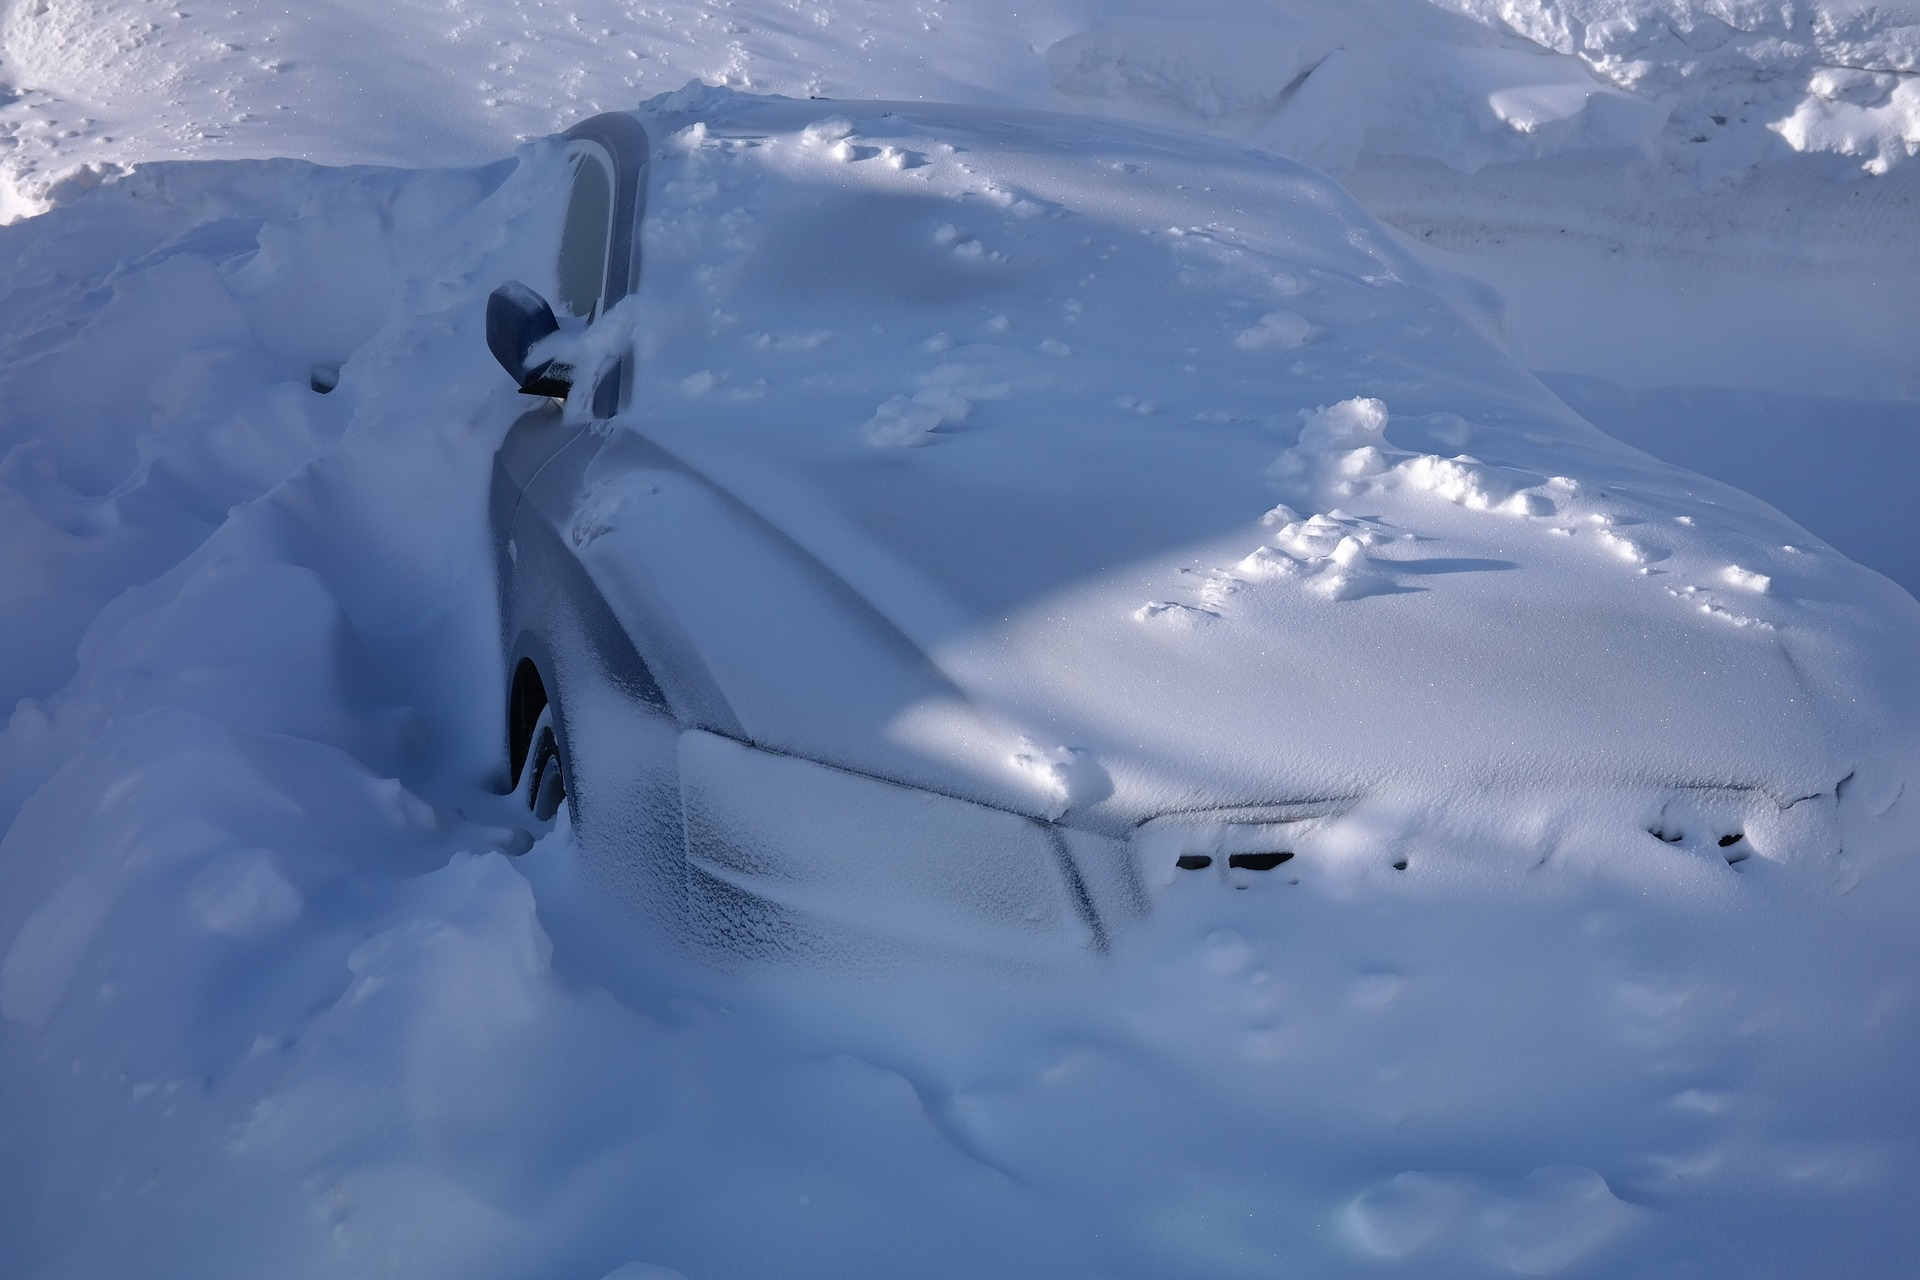 Snow Buried Car